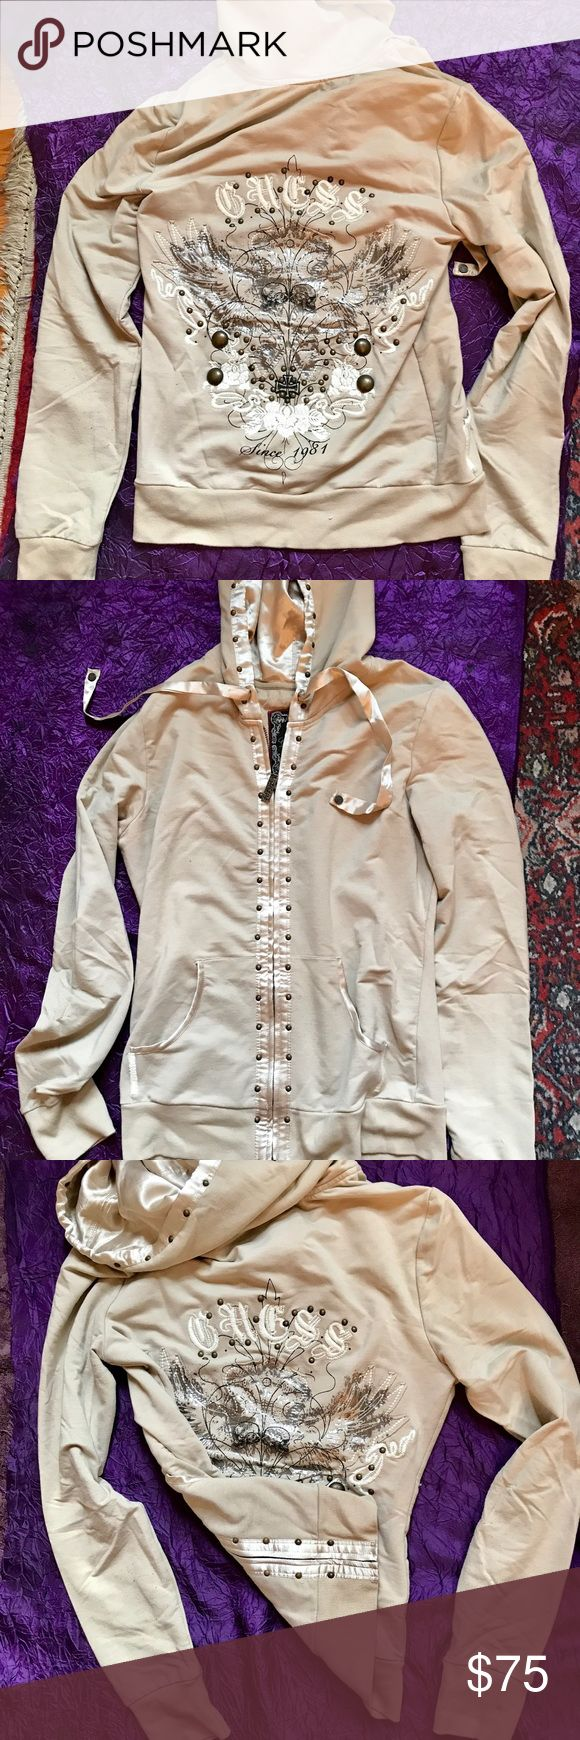 Beige zip up, worn once, in great condition. Beige Guess Jeans zip up sweatshirt. Worn once and it great condition. Guess Tops Sweatshirts & Hoodies